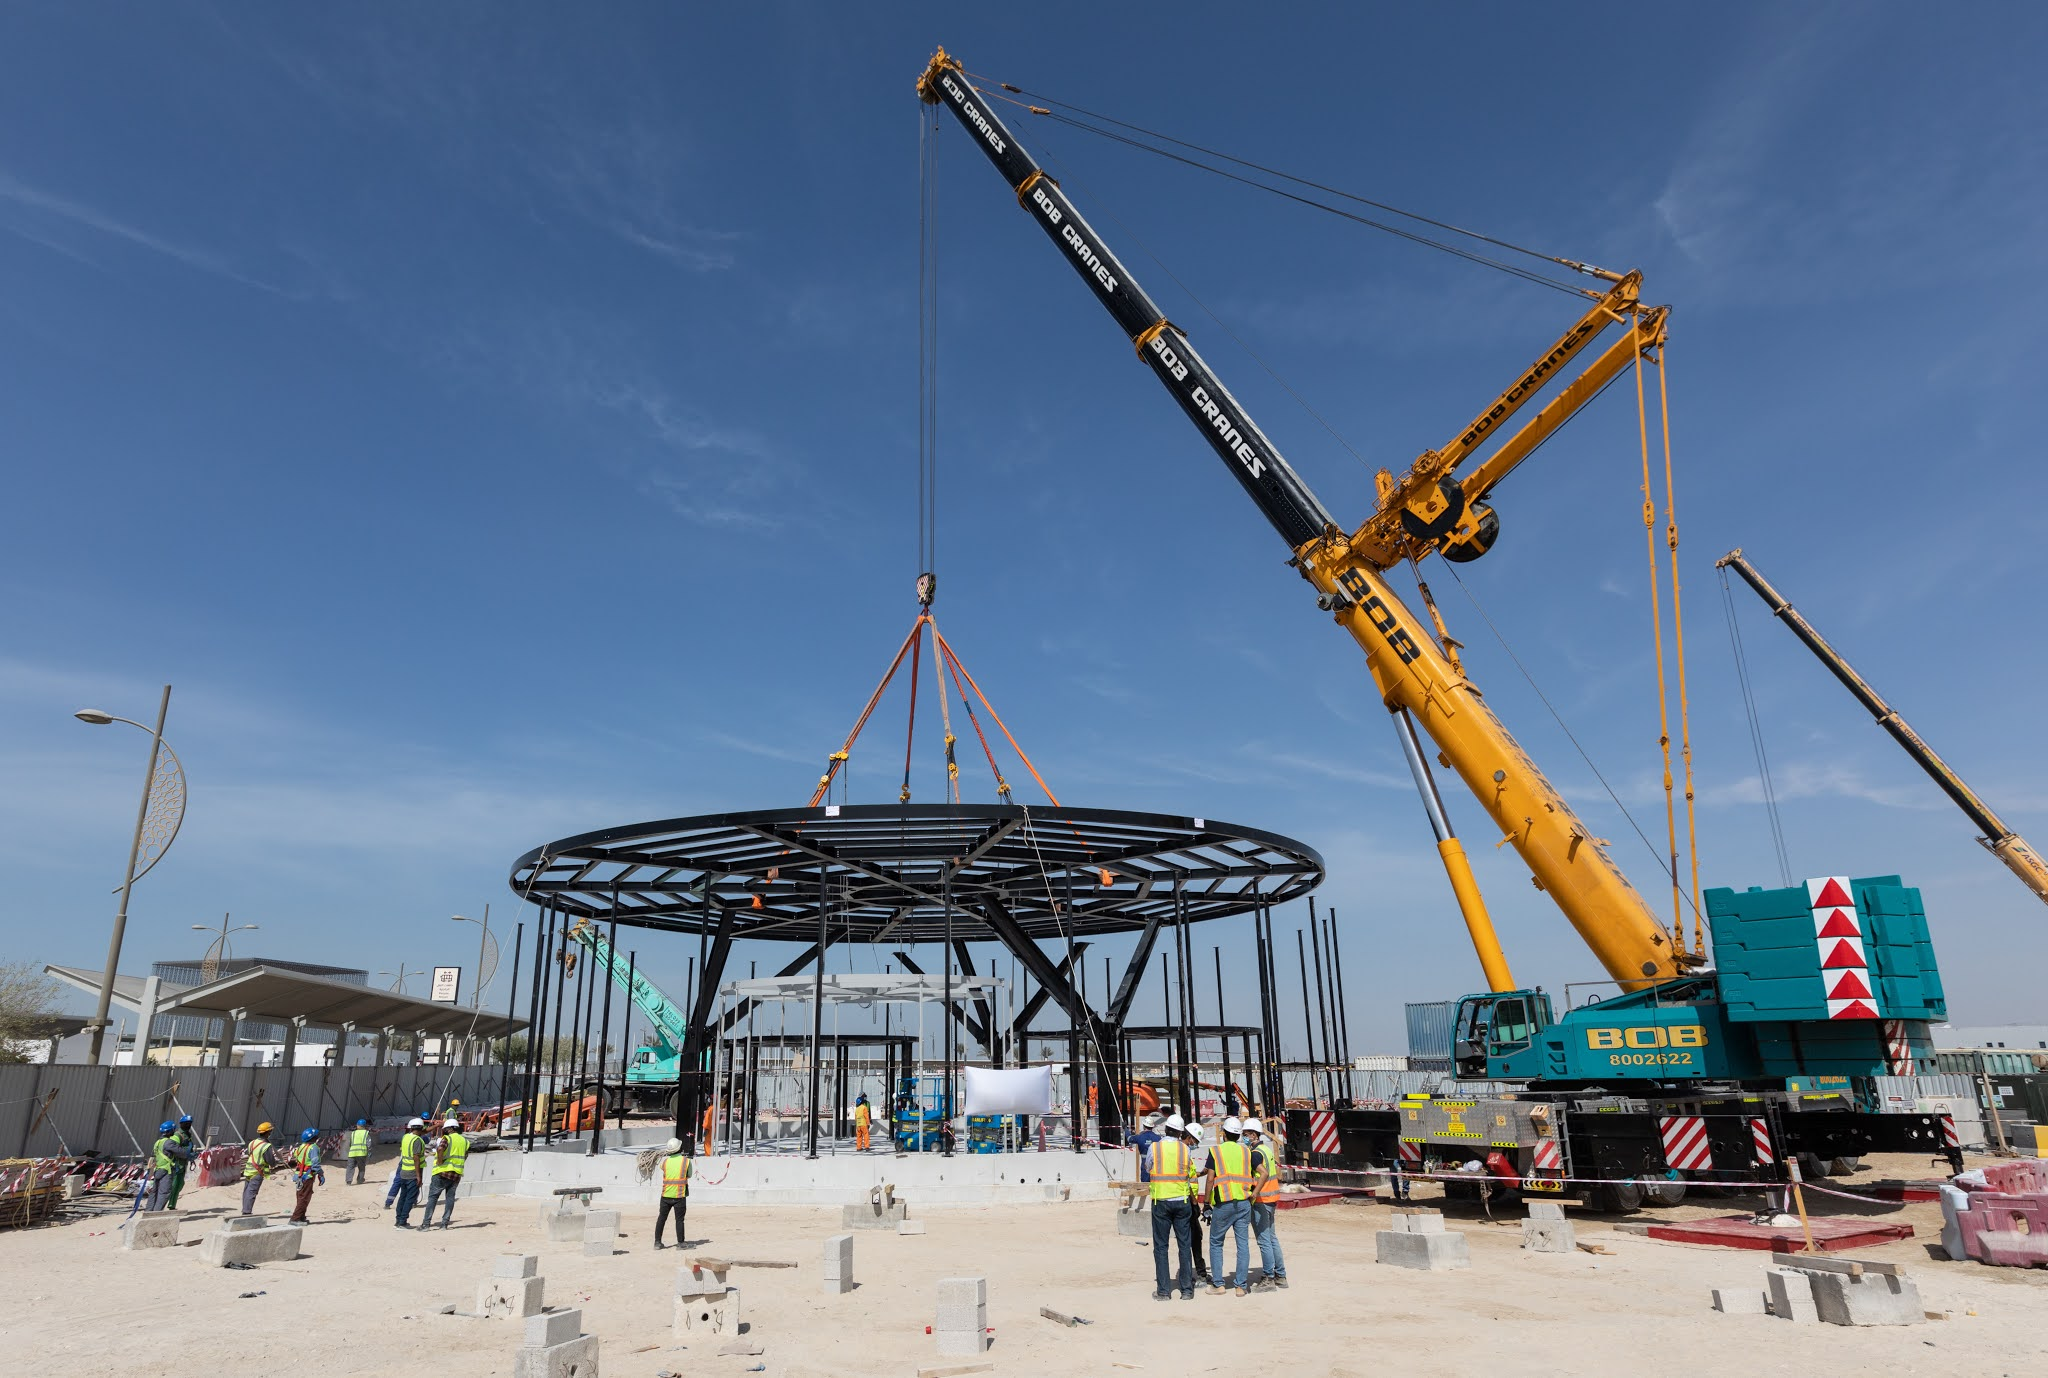 New rotorcraft terminal will facilitate mobility to and from Expo 2020 site in Dubai